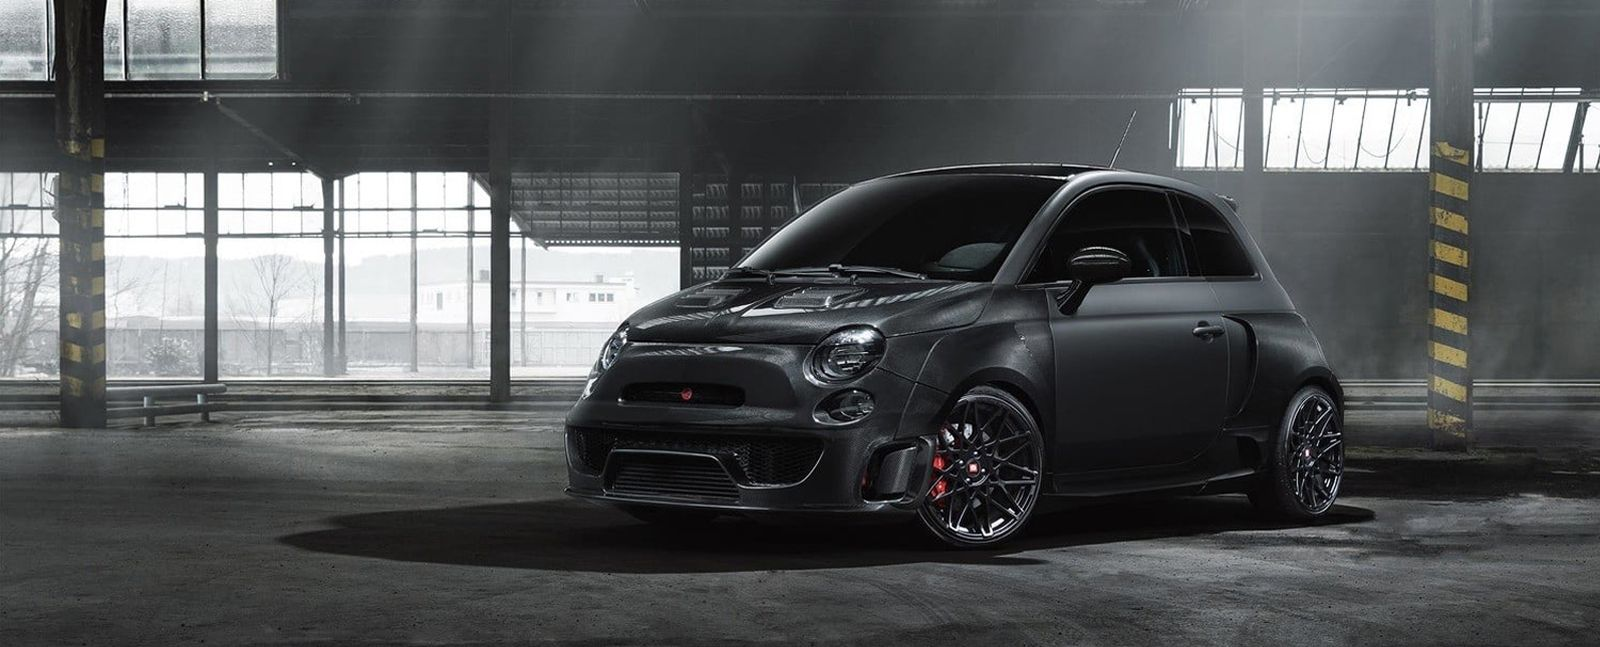 Abarth Car Leasing in 2020 Car lease, Car, Contract hire